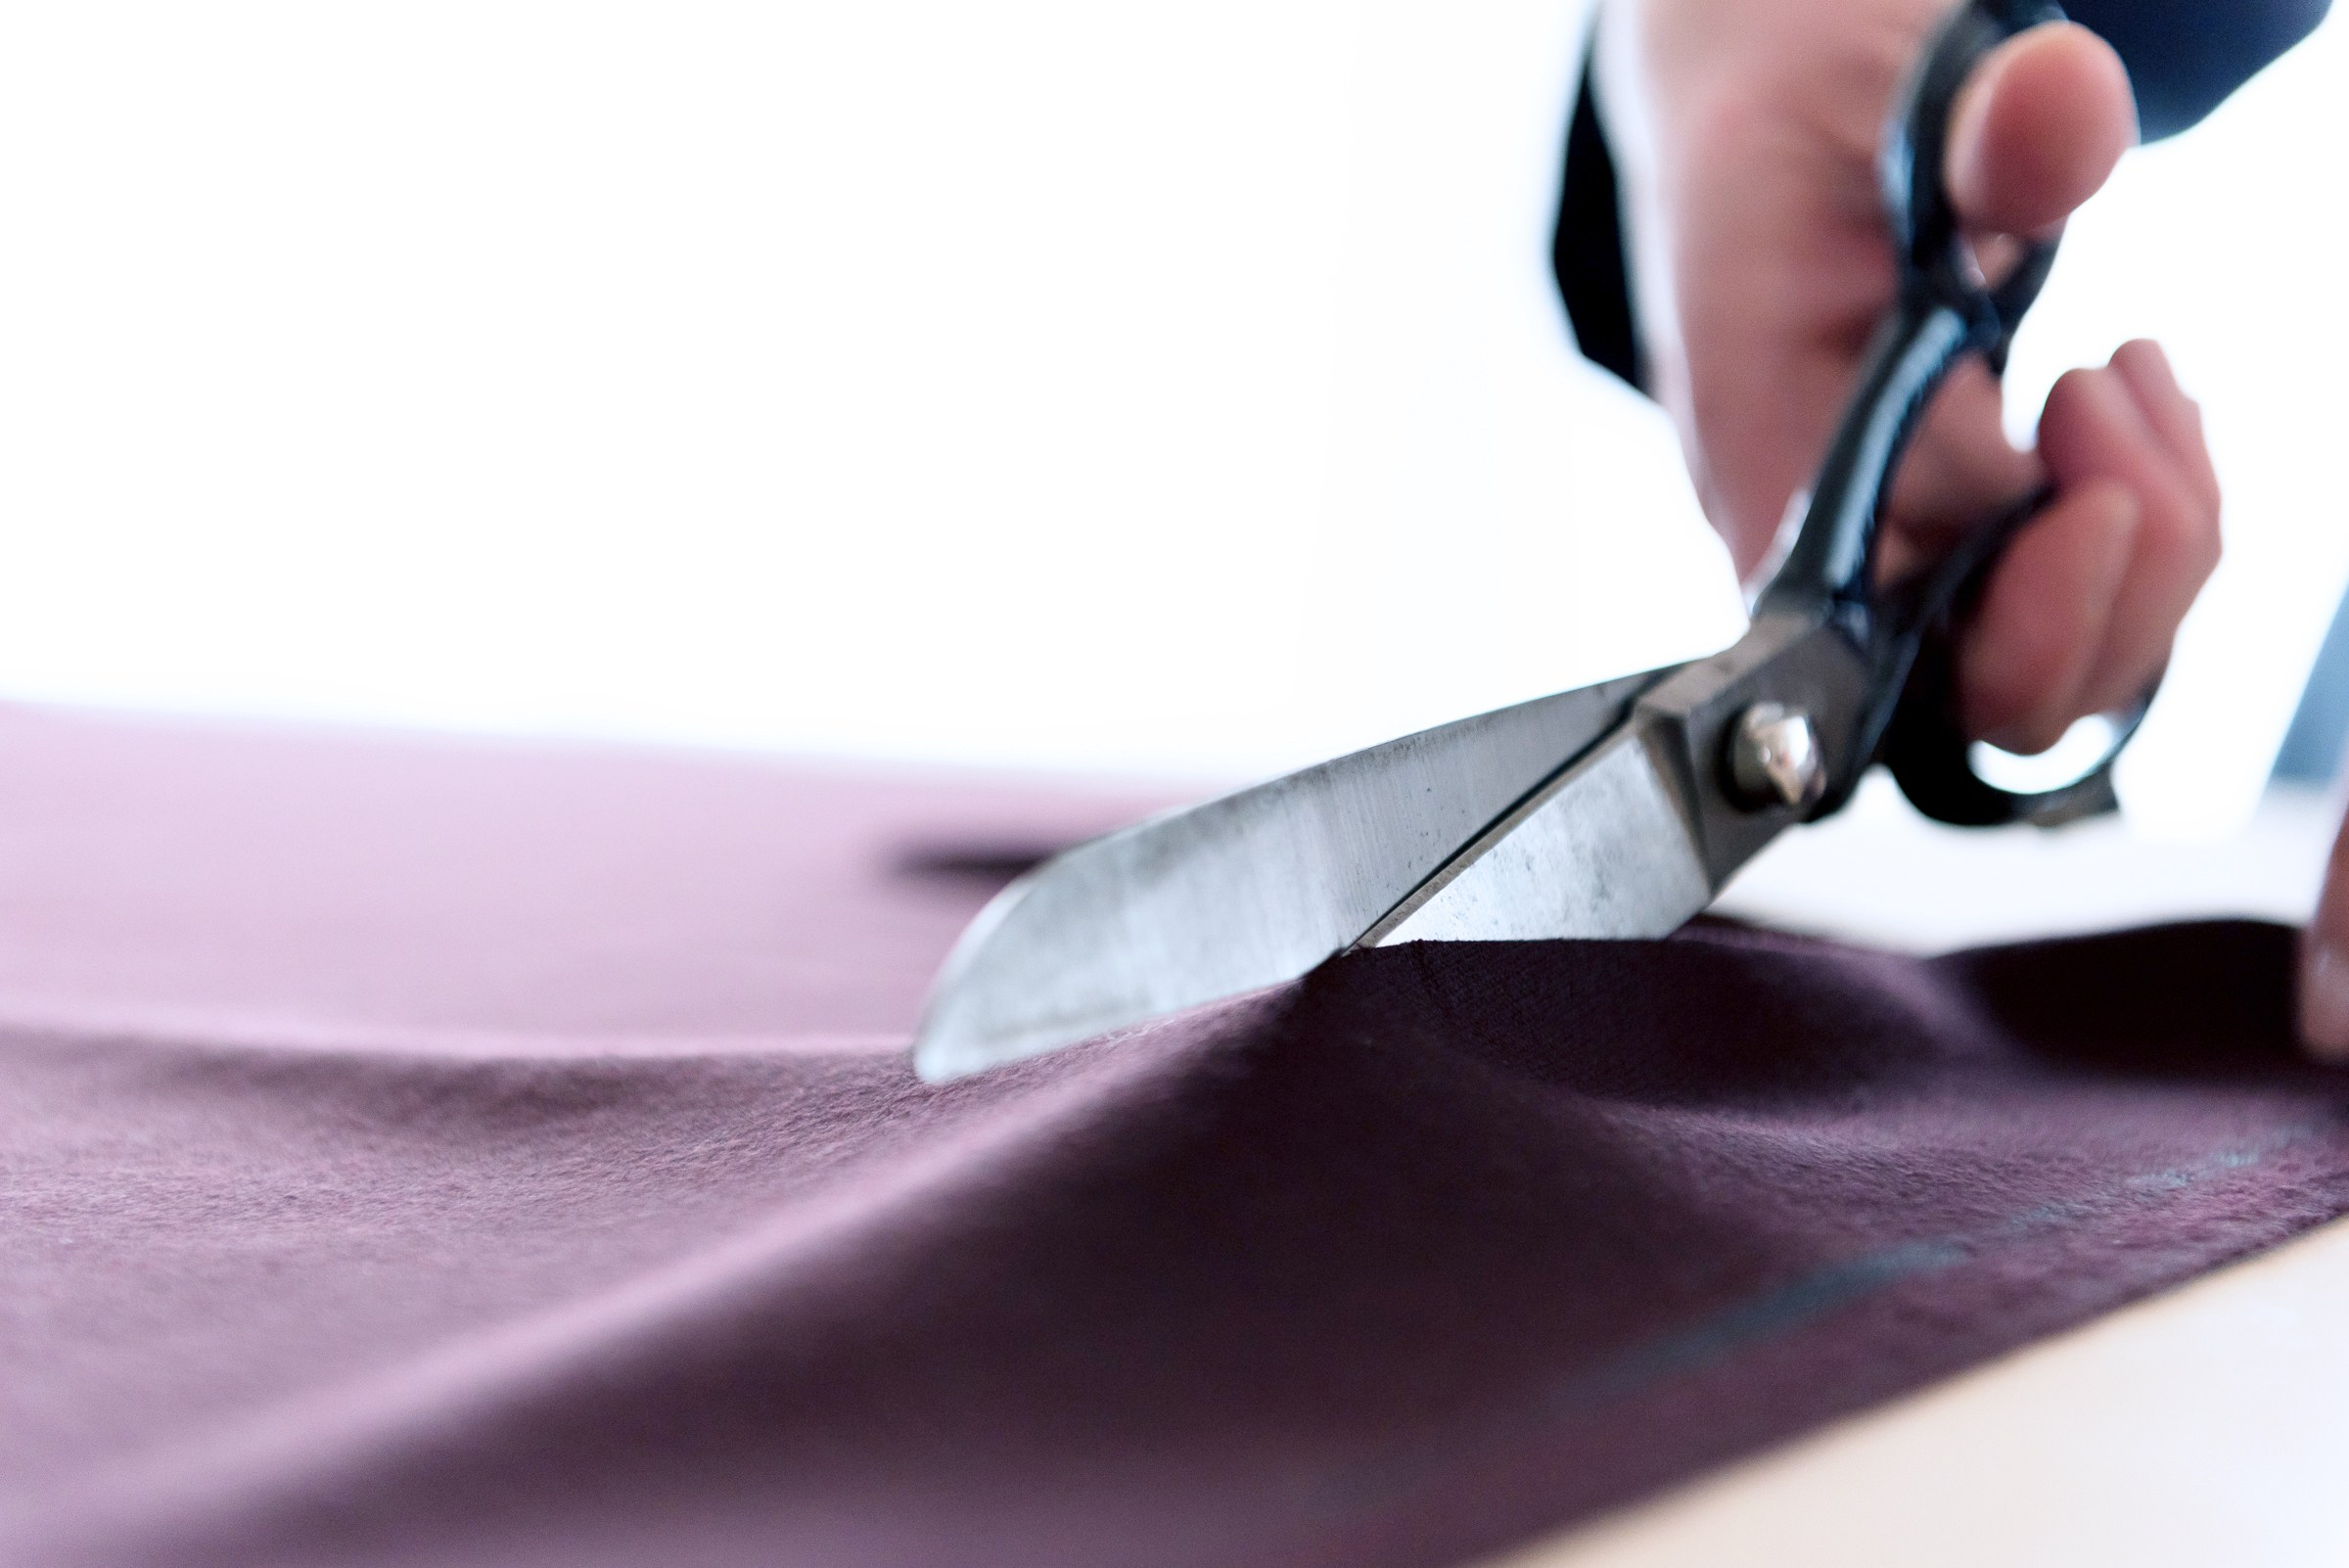 Close up of cutting shears being held and cutting through burgundy cloth